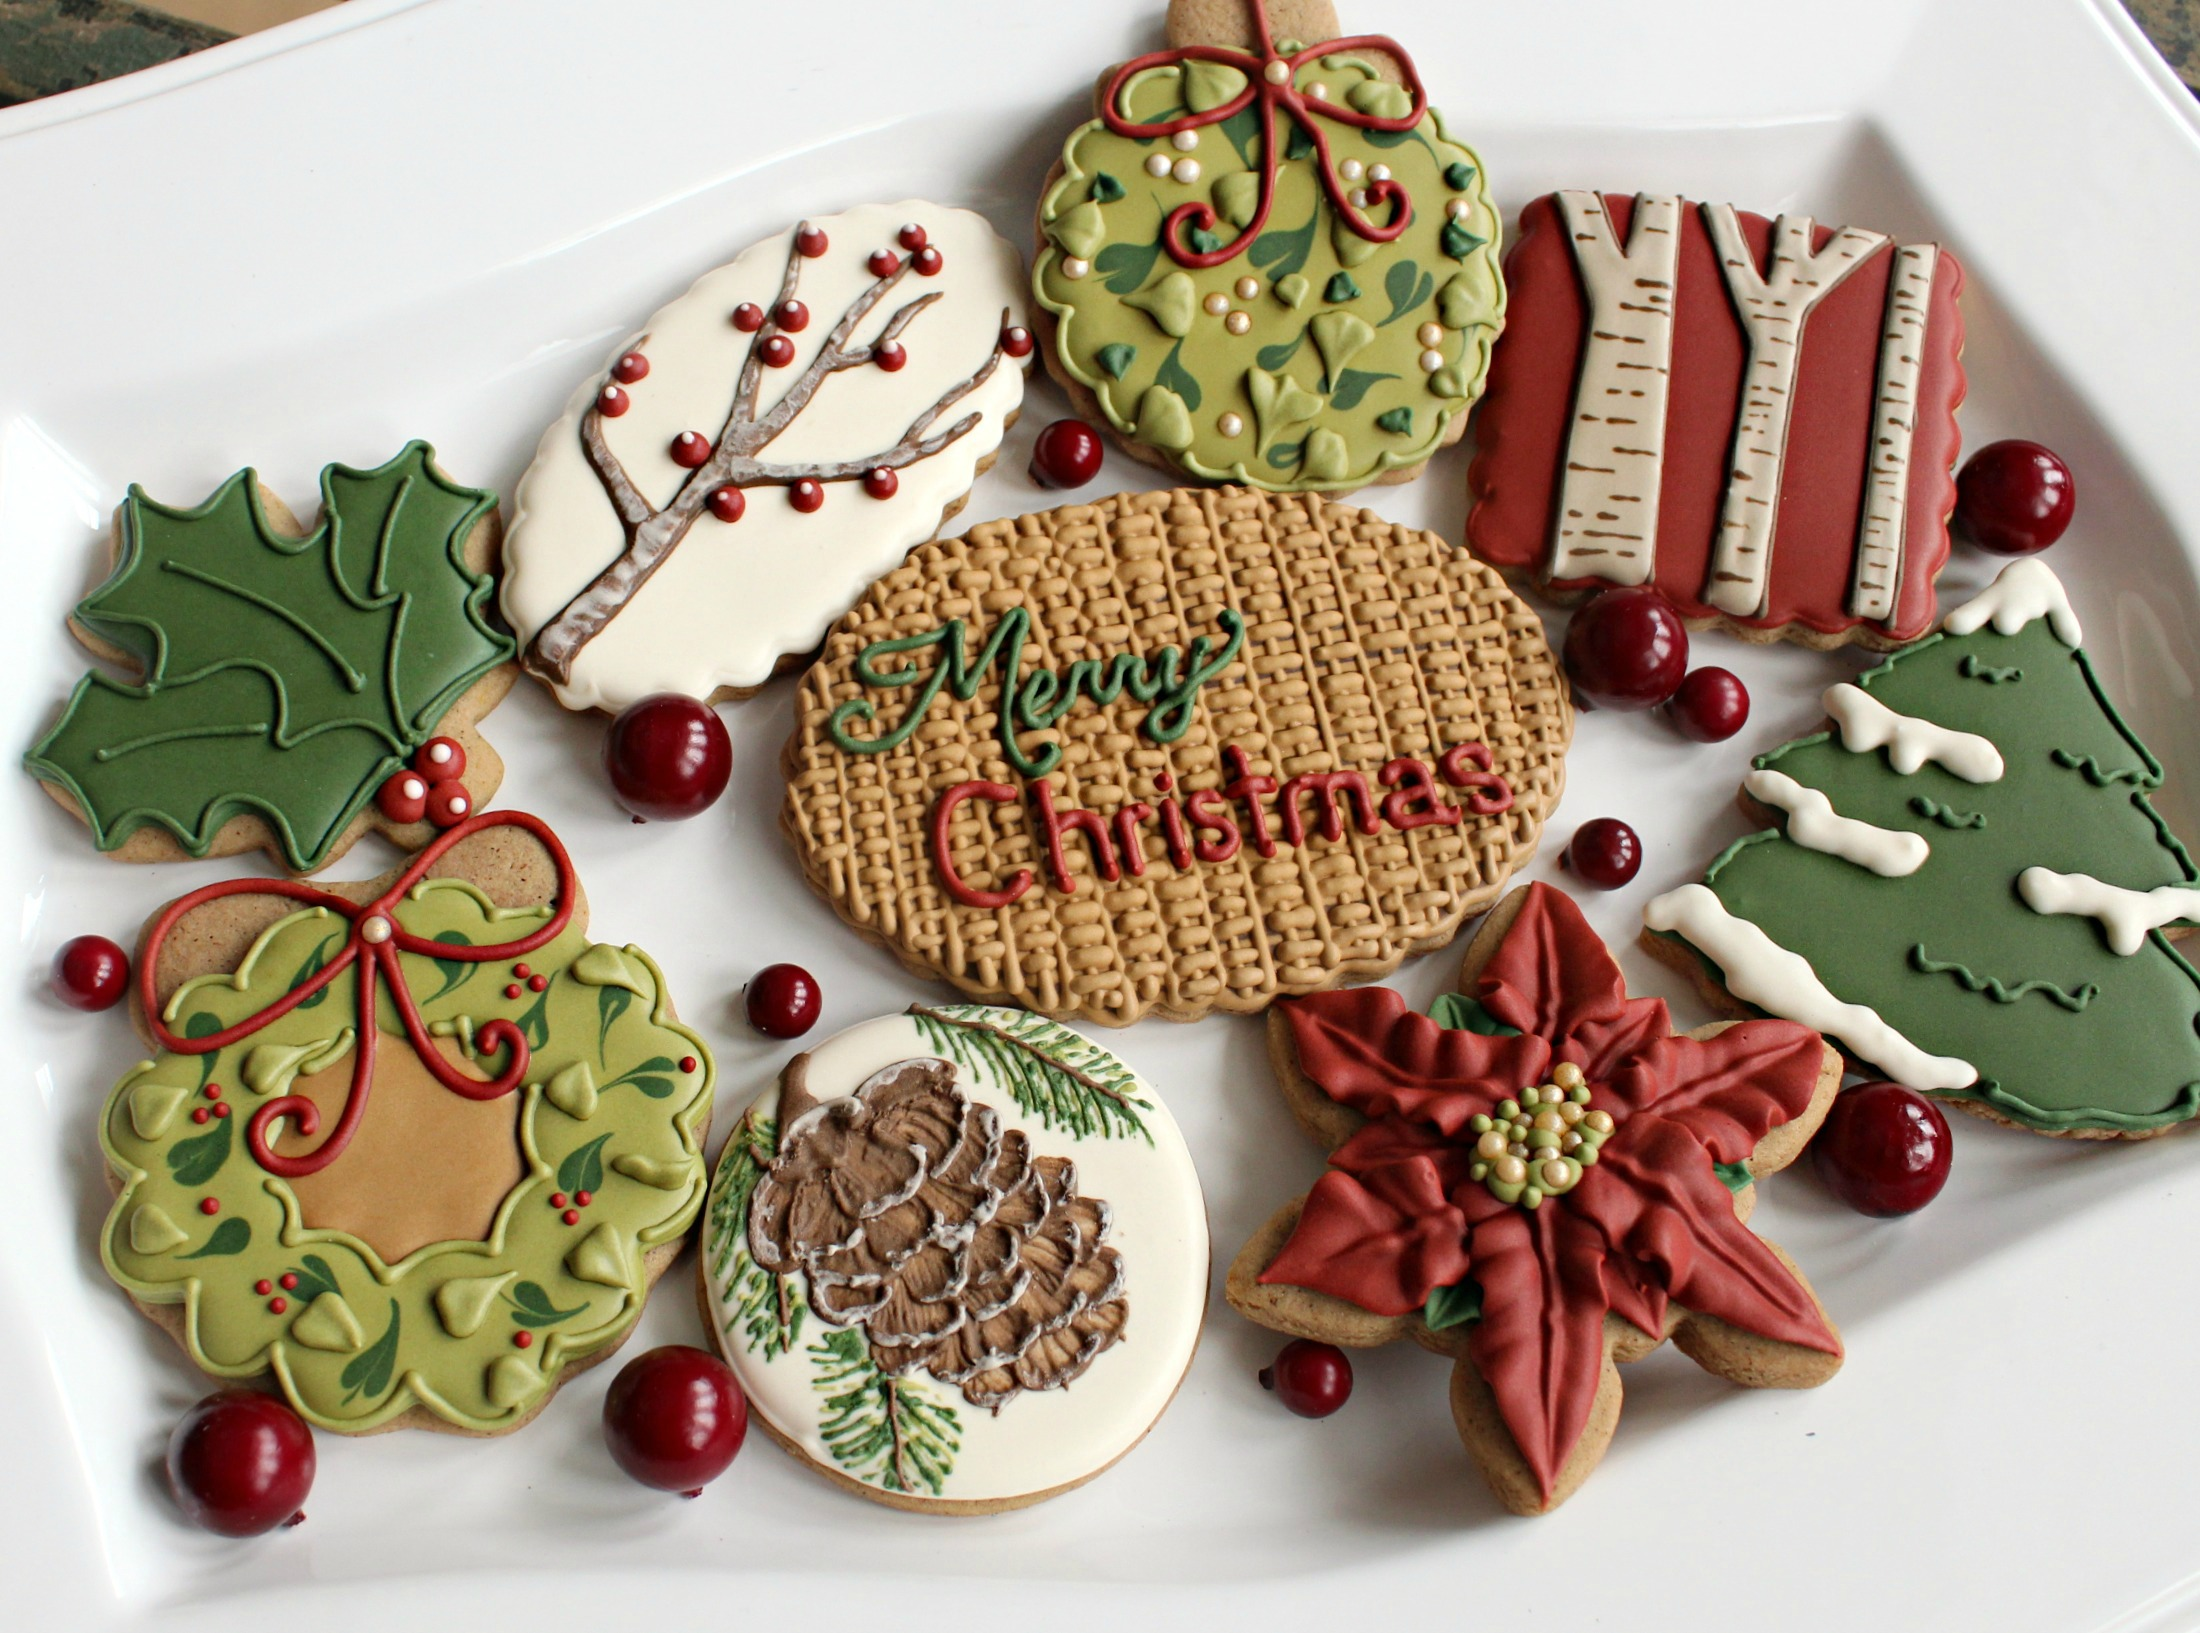 Christmas Cookies Recipes With Pictures.Brown Sugar Roll Out Cookies The Sweet Adventures